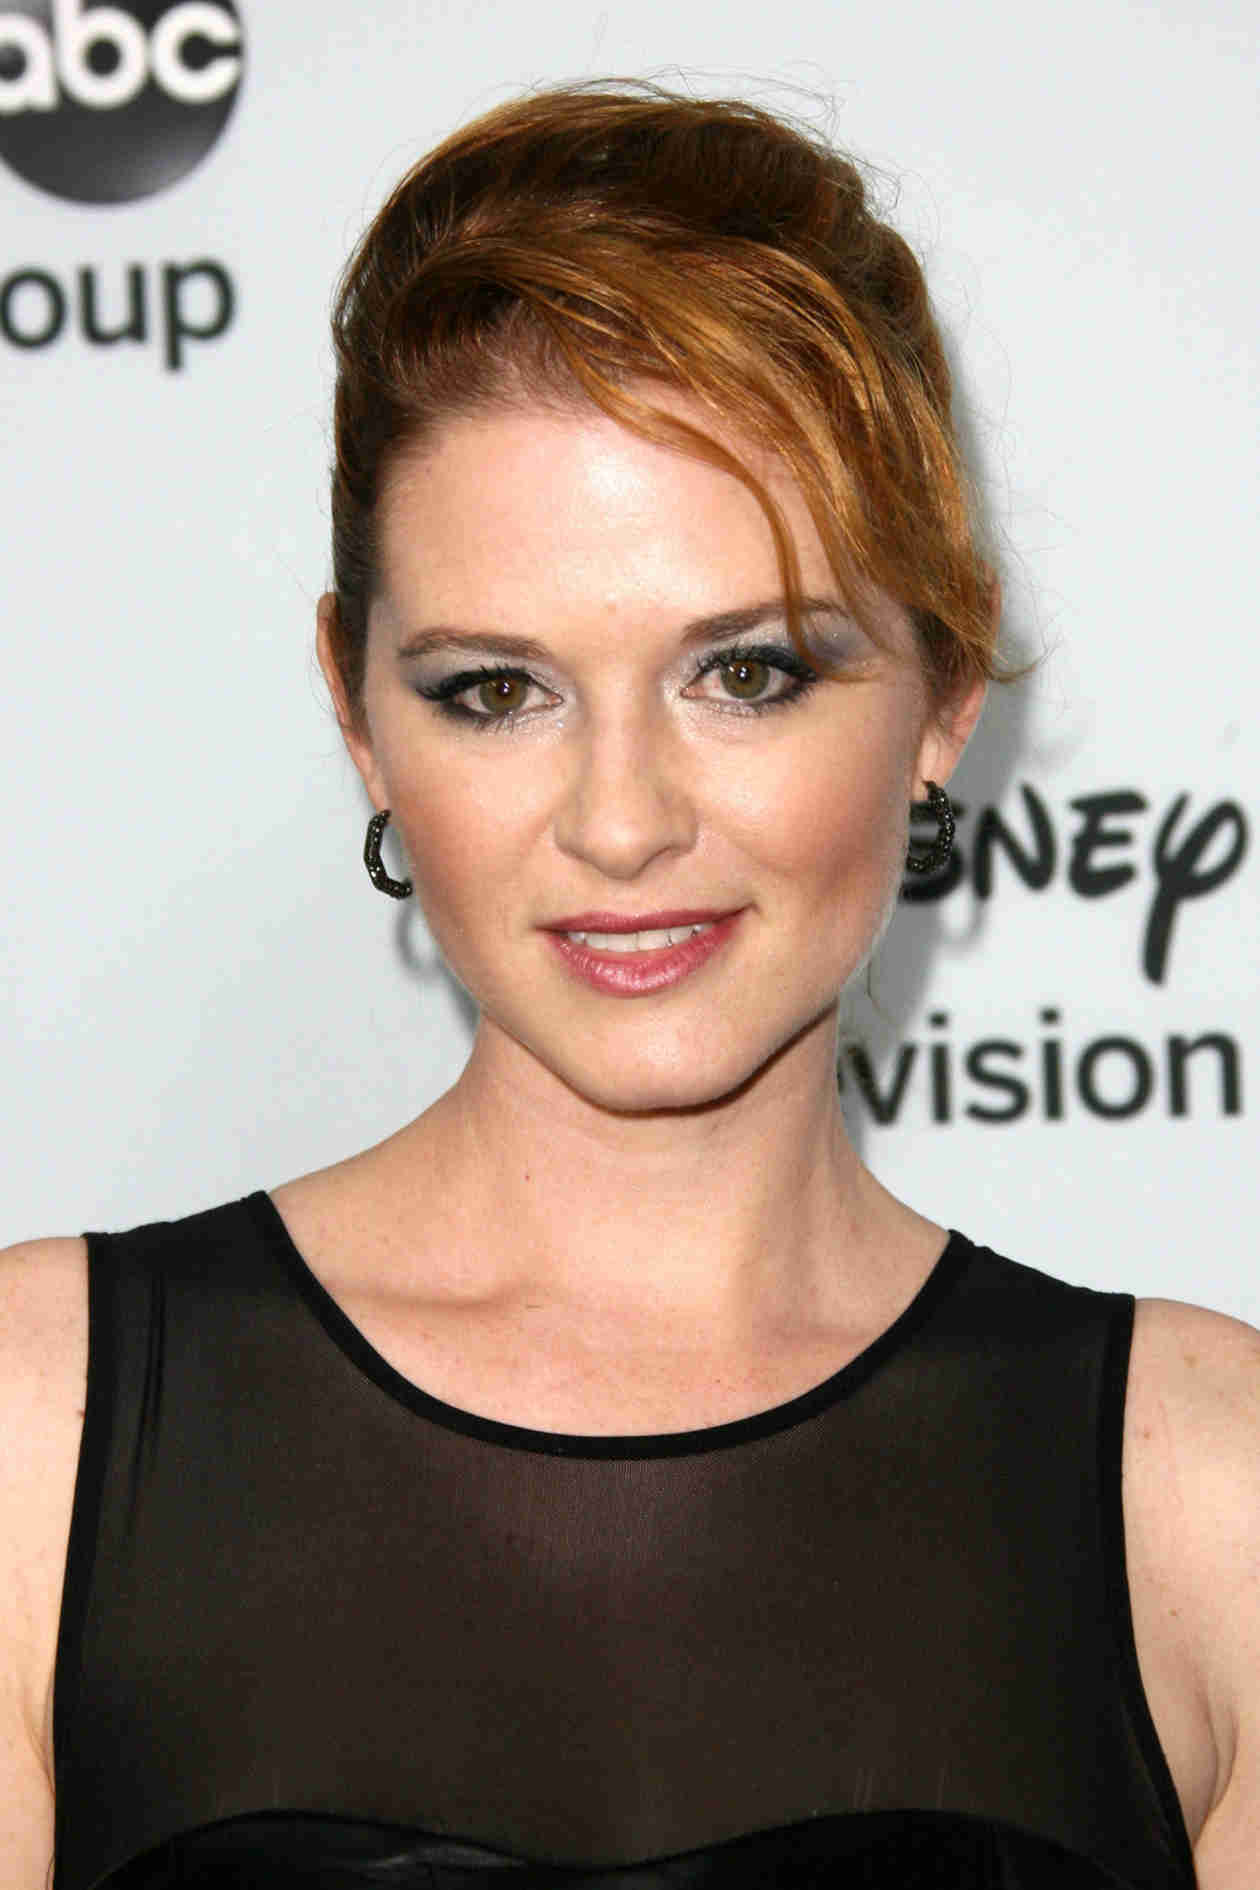 Grey's Anatomy: Sarah Drew's Co-Stars Congratulate Her on Her Baby News